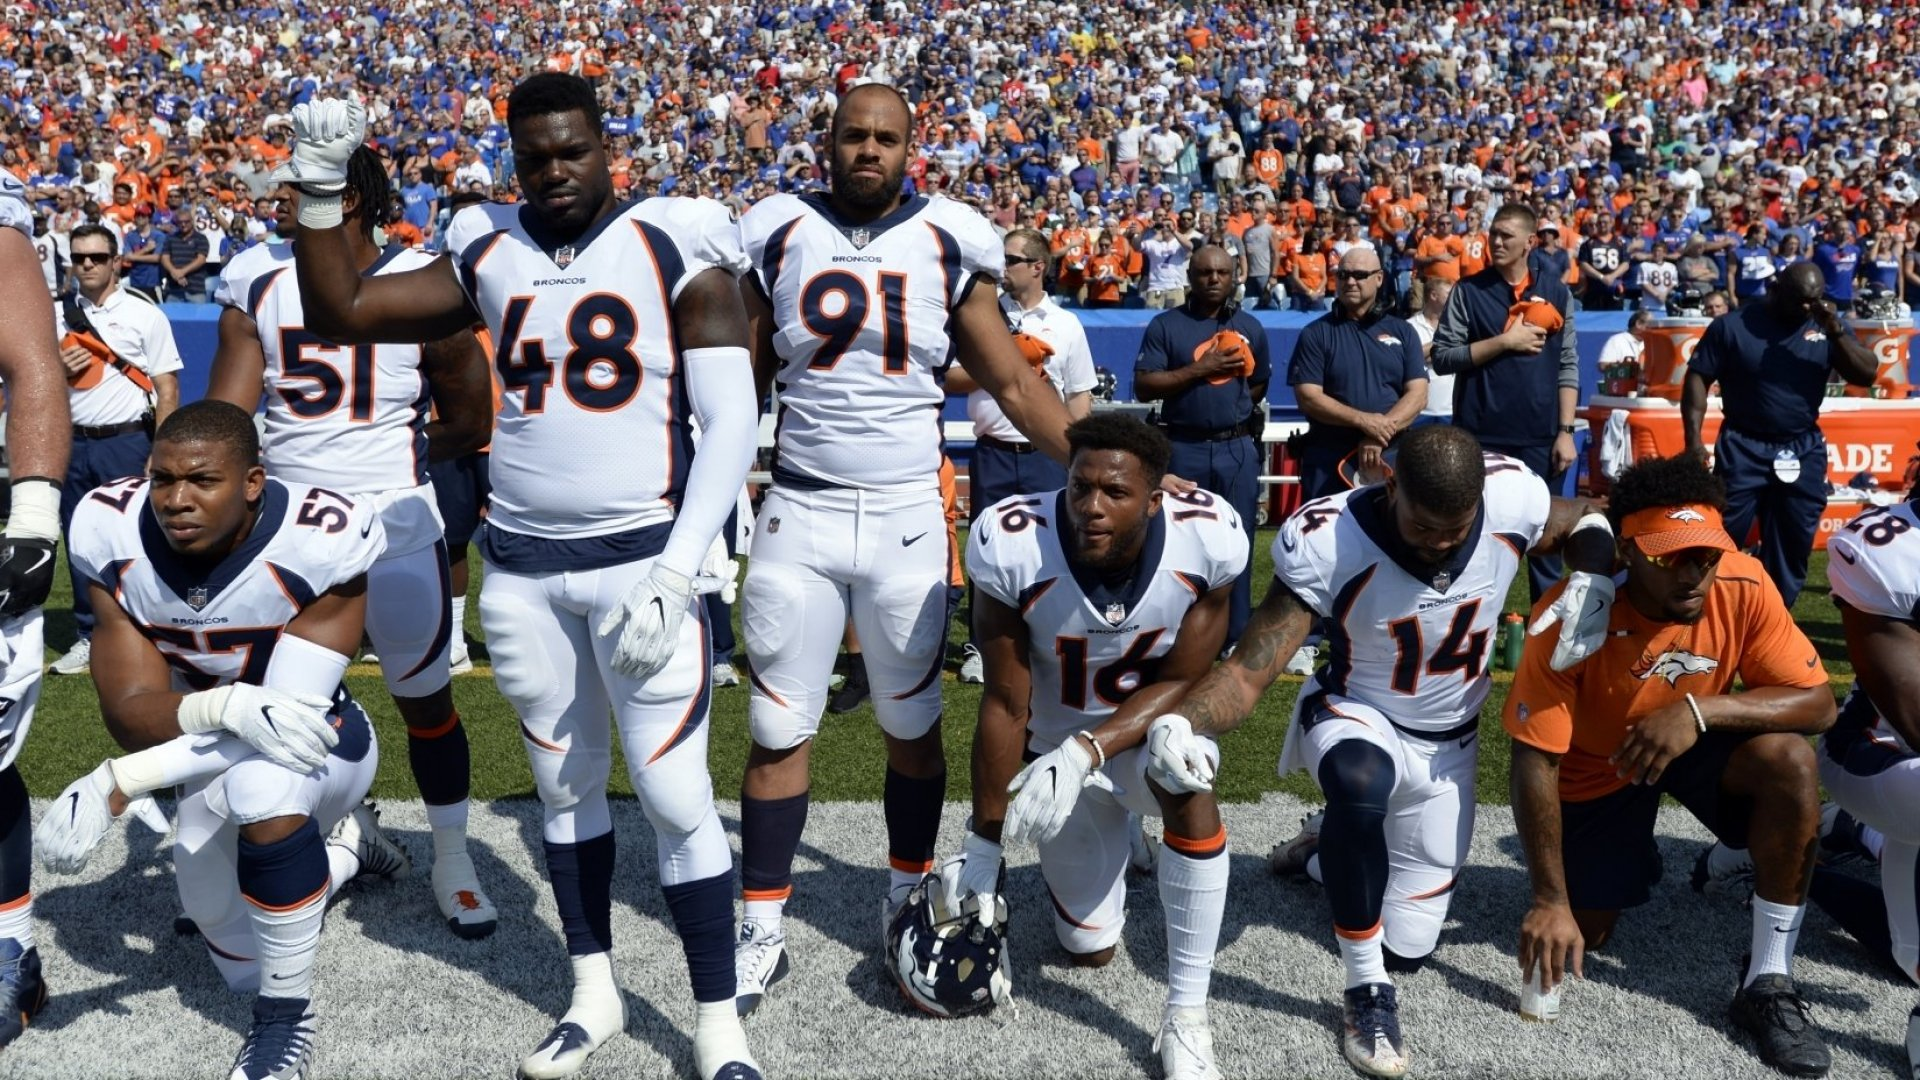 Can the NFL (or Nascar) Fire People Who Take a Knee During the National Anthem?